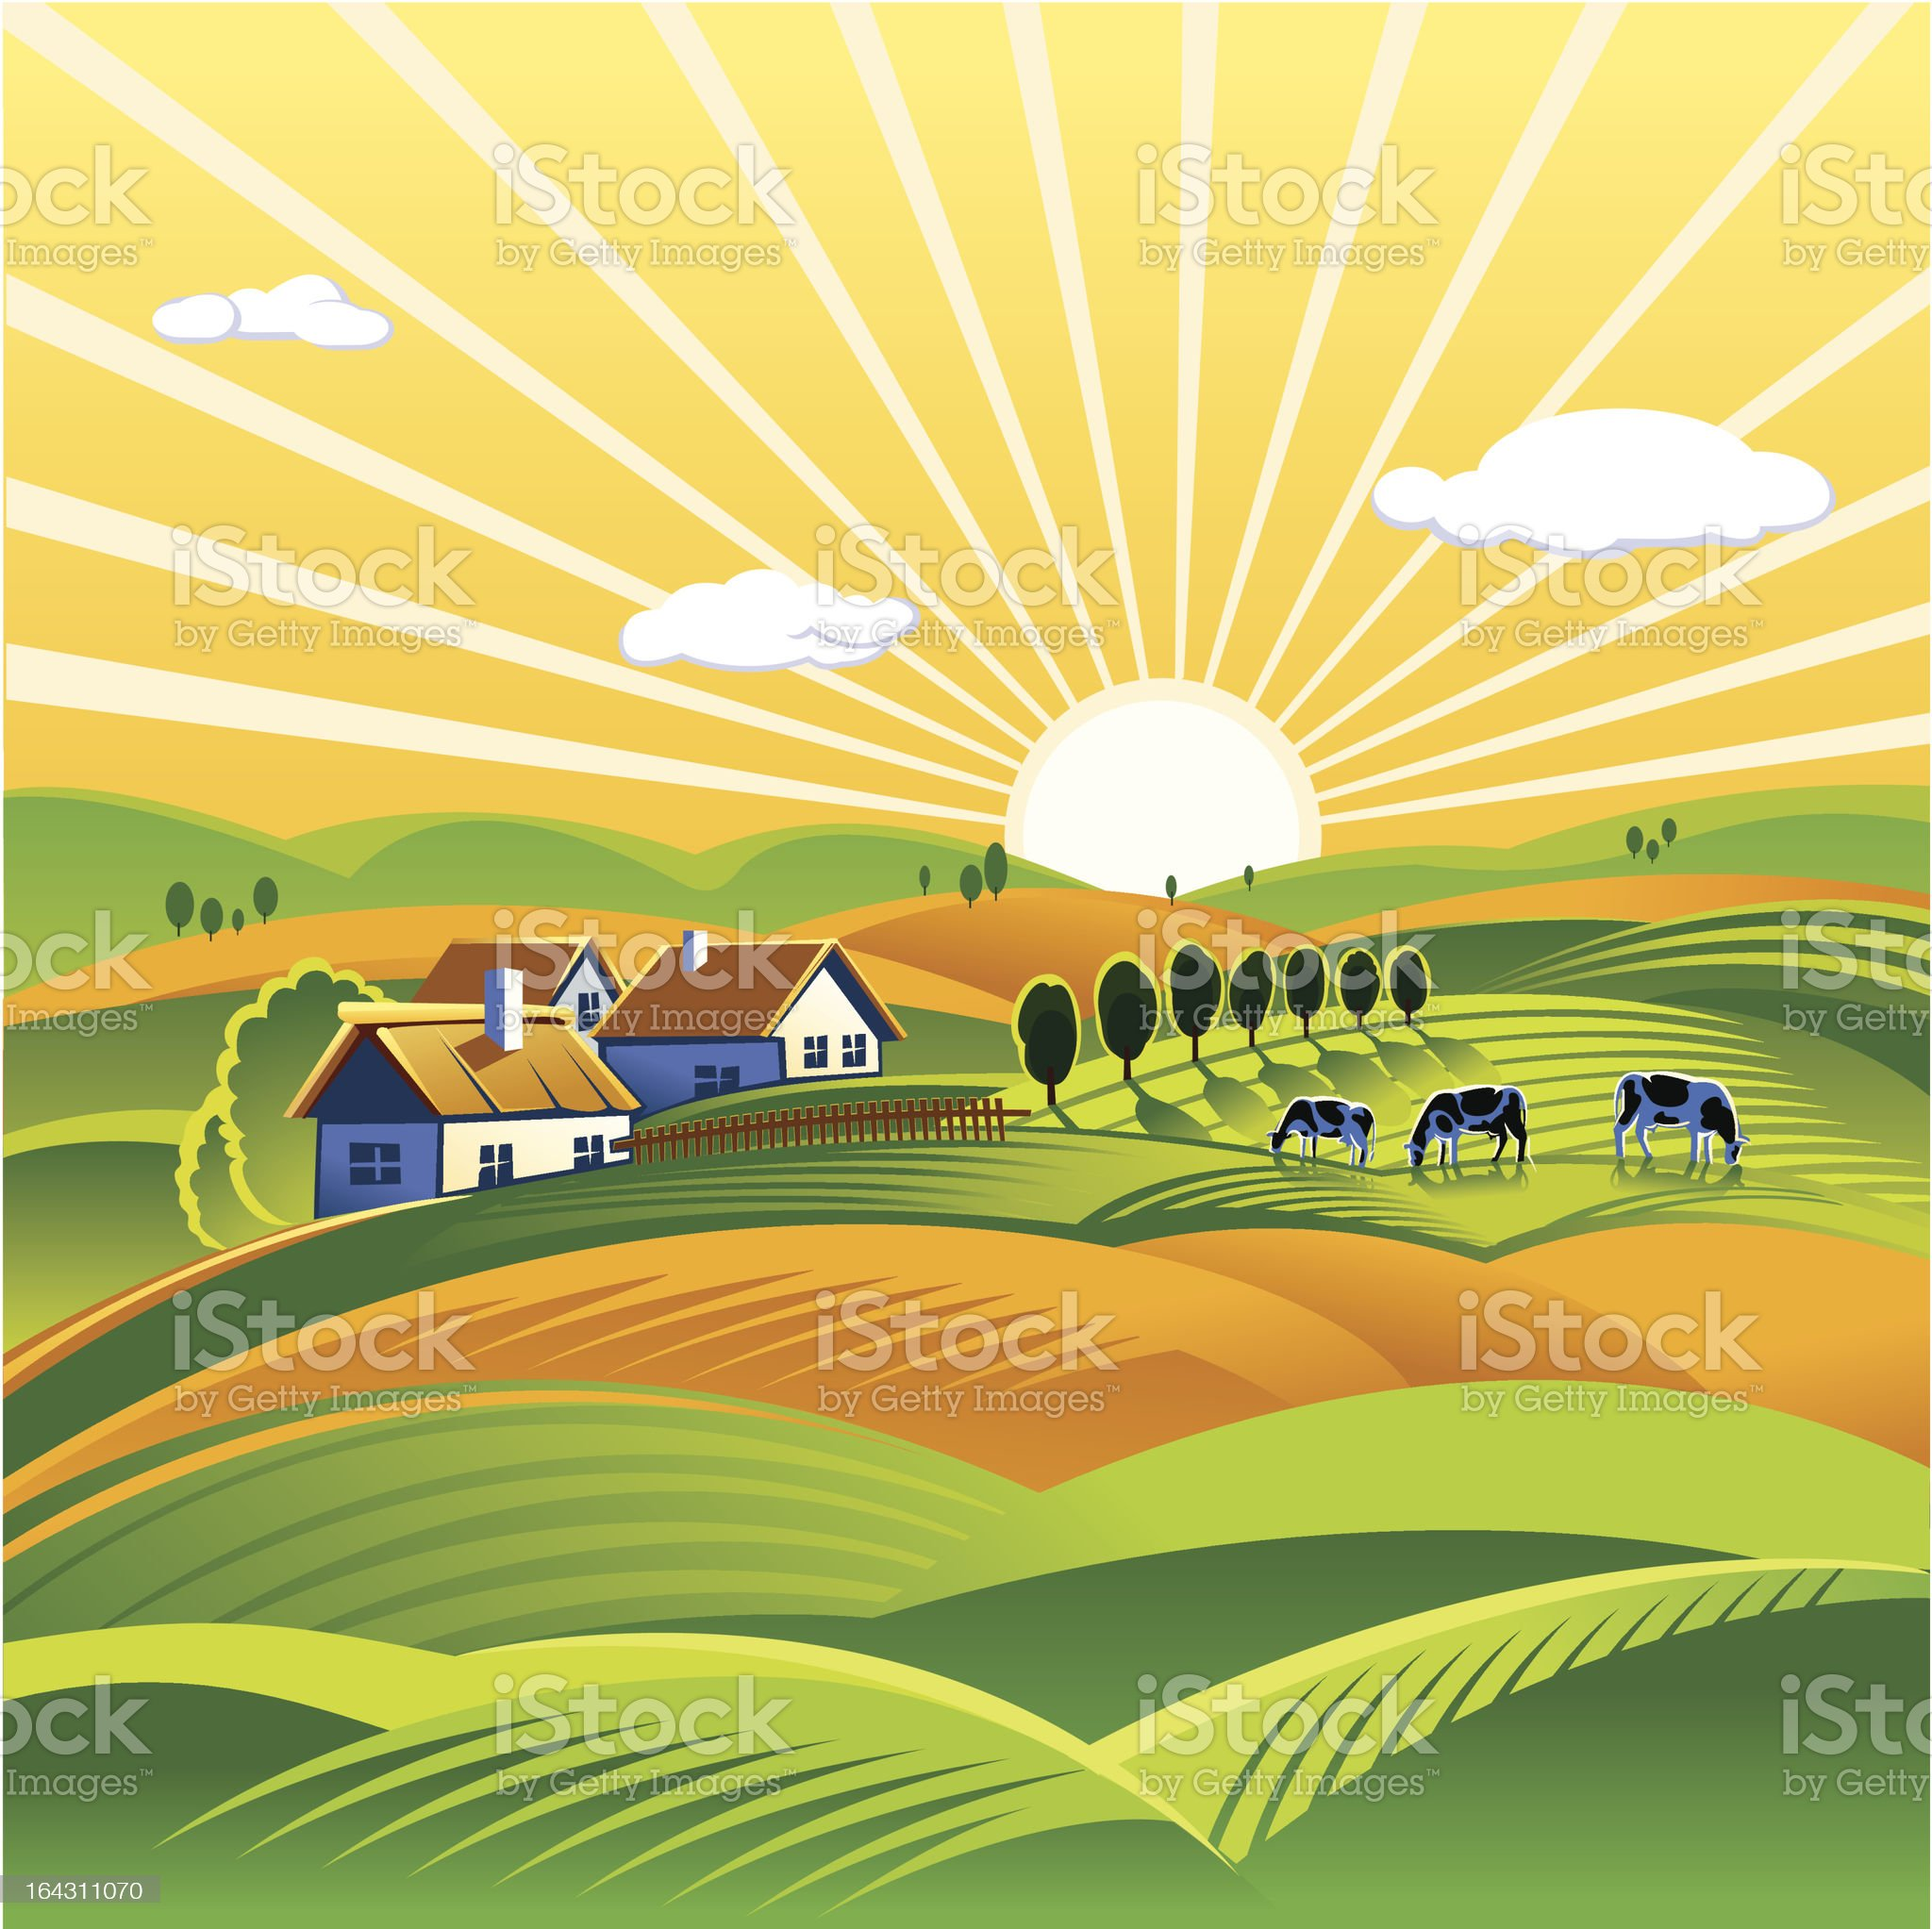 Cartoon image of sun setting on landscape royalty-free stock vector art